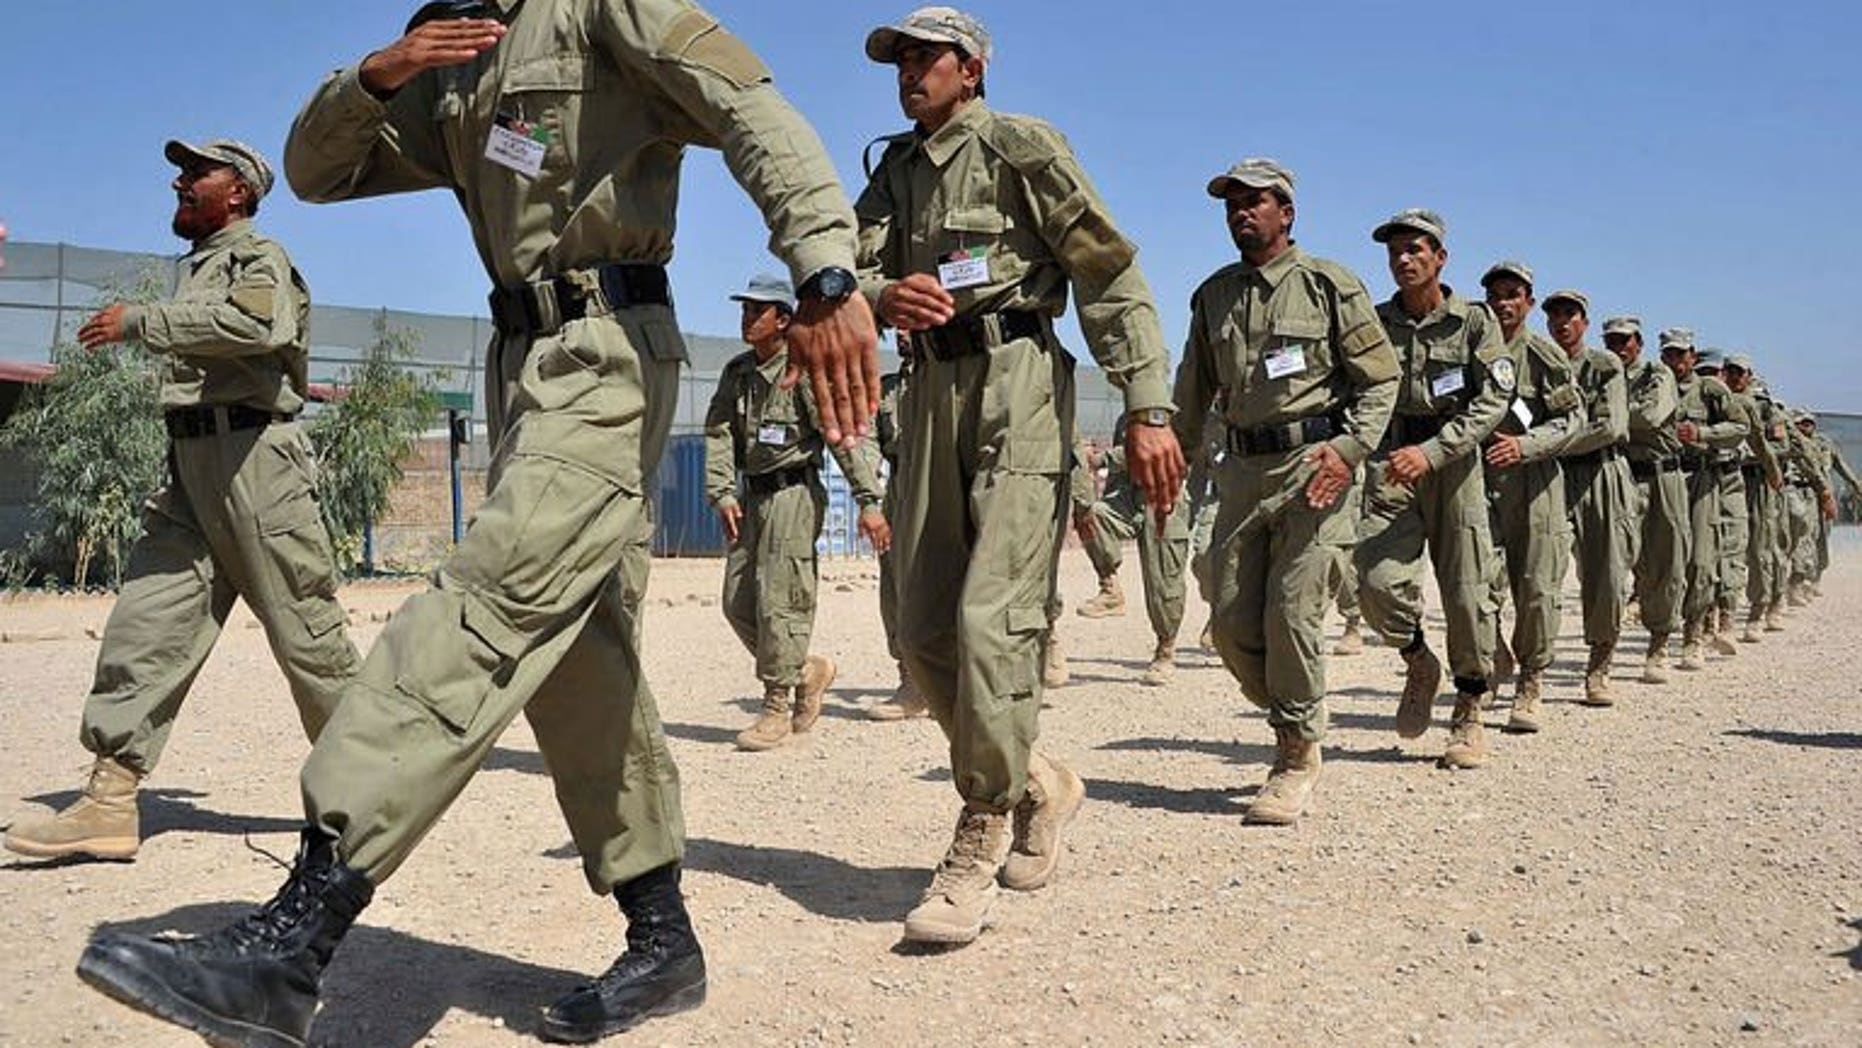 Afghan police march during a graduation ceremony at a police training centre on the outskirts of Jalalabad on July 4, 2013. A suicide bomber killed 12 policemen in the southern Afghan province of Uruzgan on Friday when he blew himself up inside a police station as officers ate lunch in a dining hall, officials said.